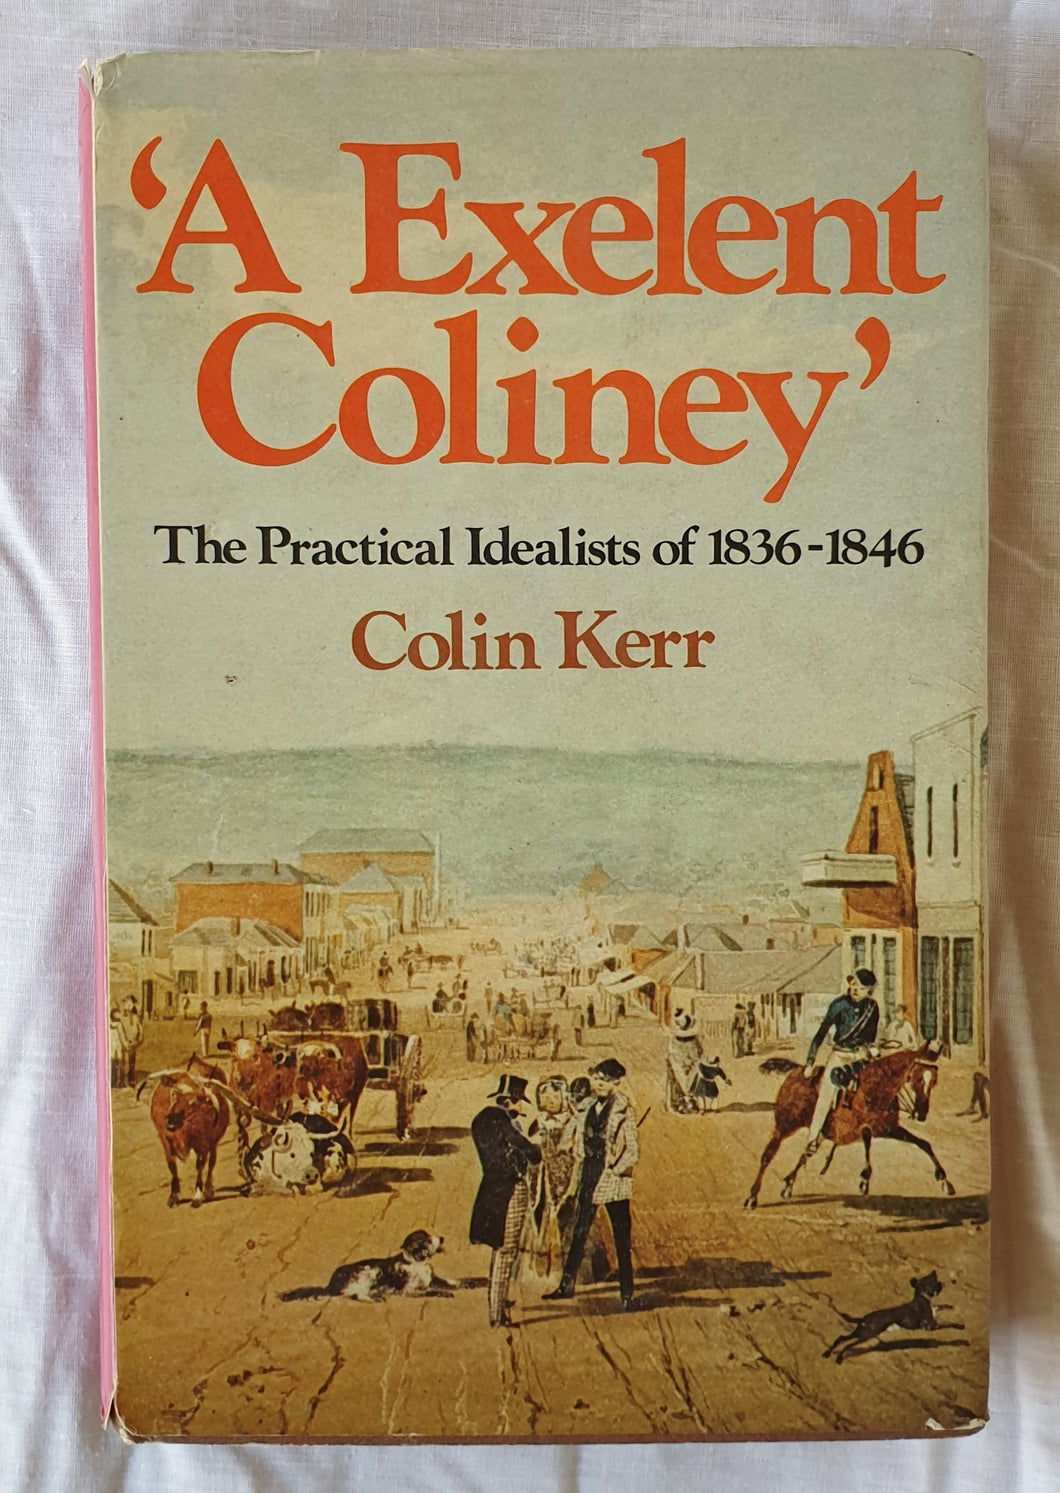 'A Excellent Coliney' by Colin Kerr